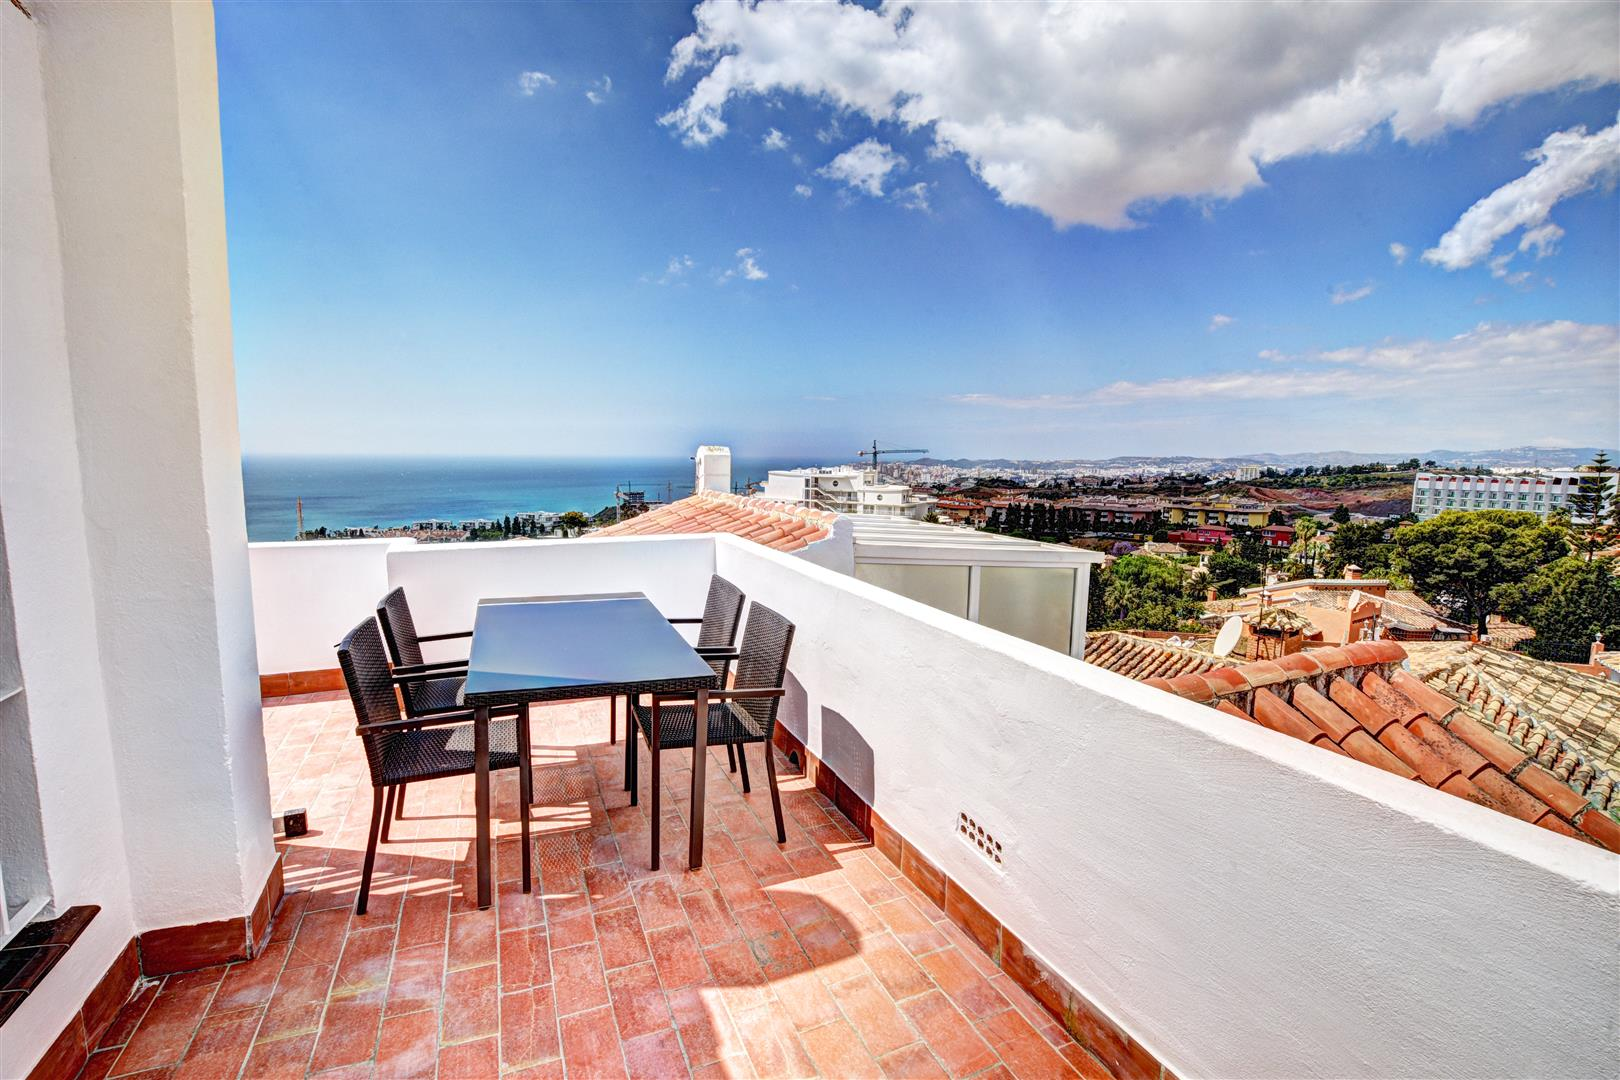 townhouse for sale in Benalmadena - terrace